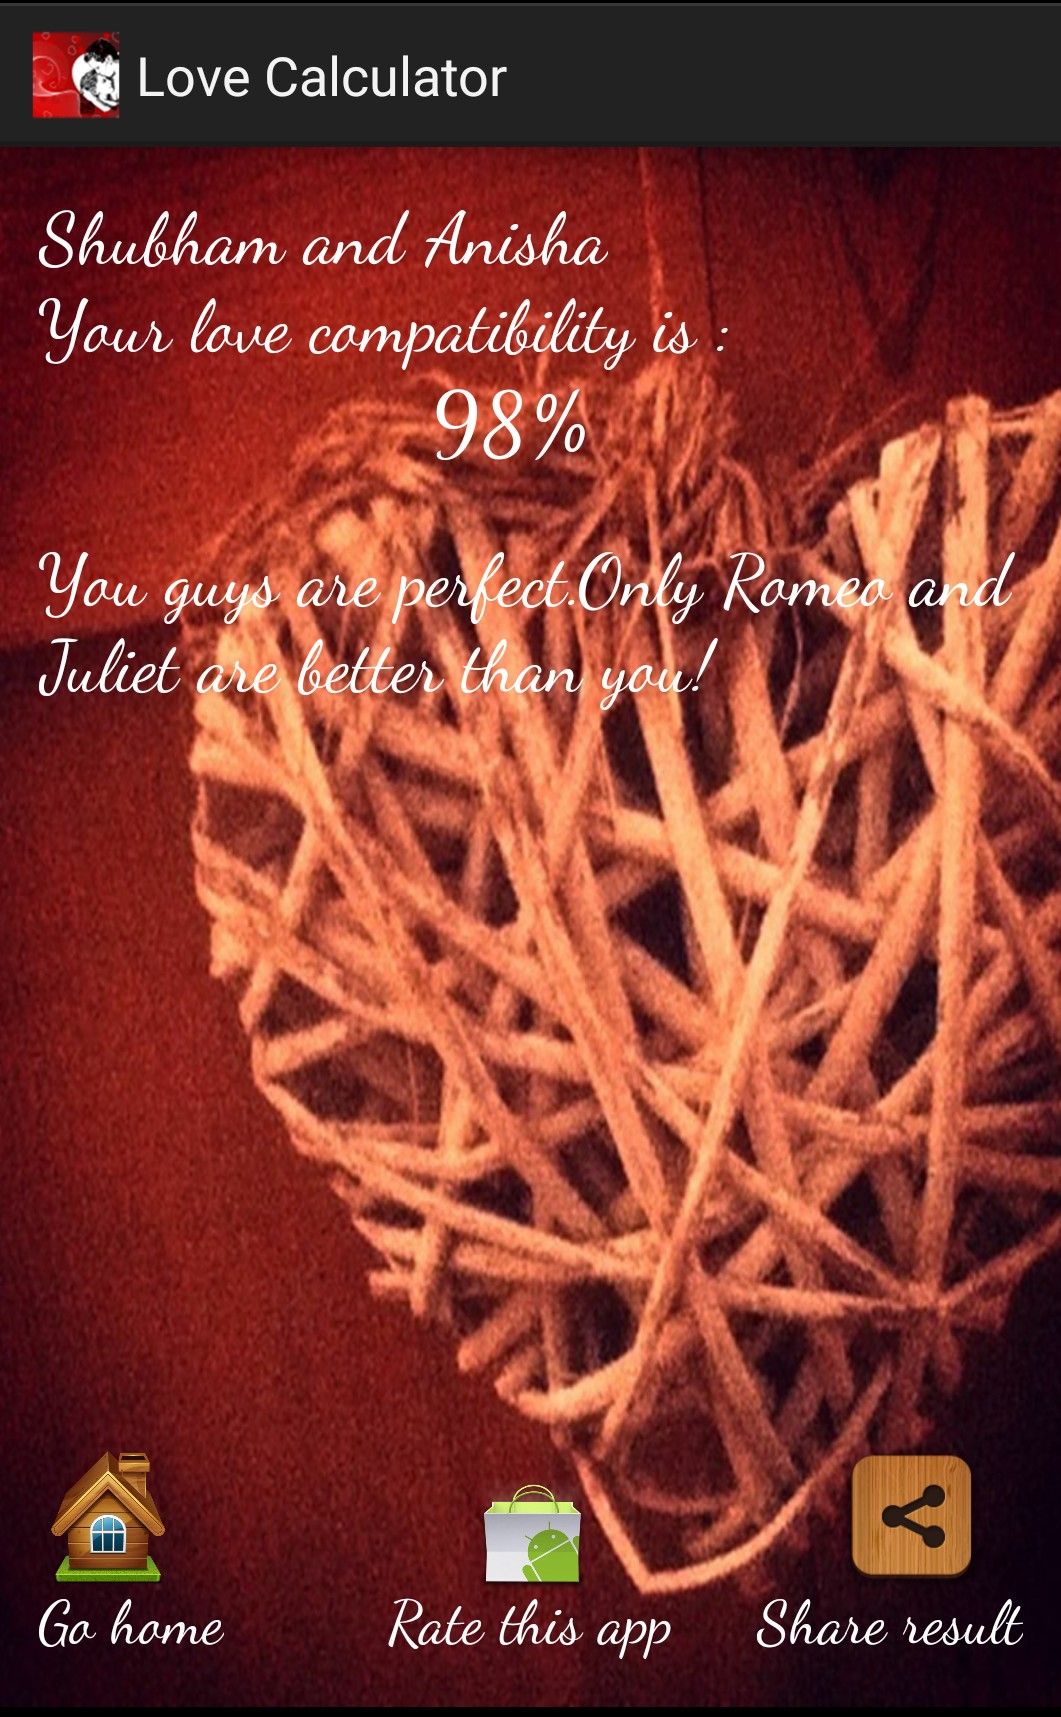 Trusted love calculator for couples.